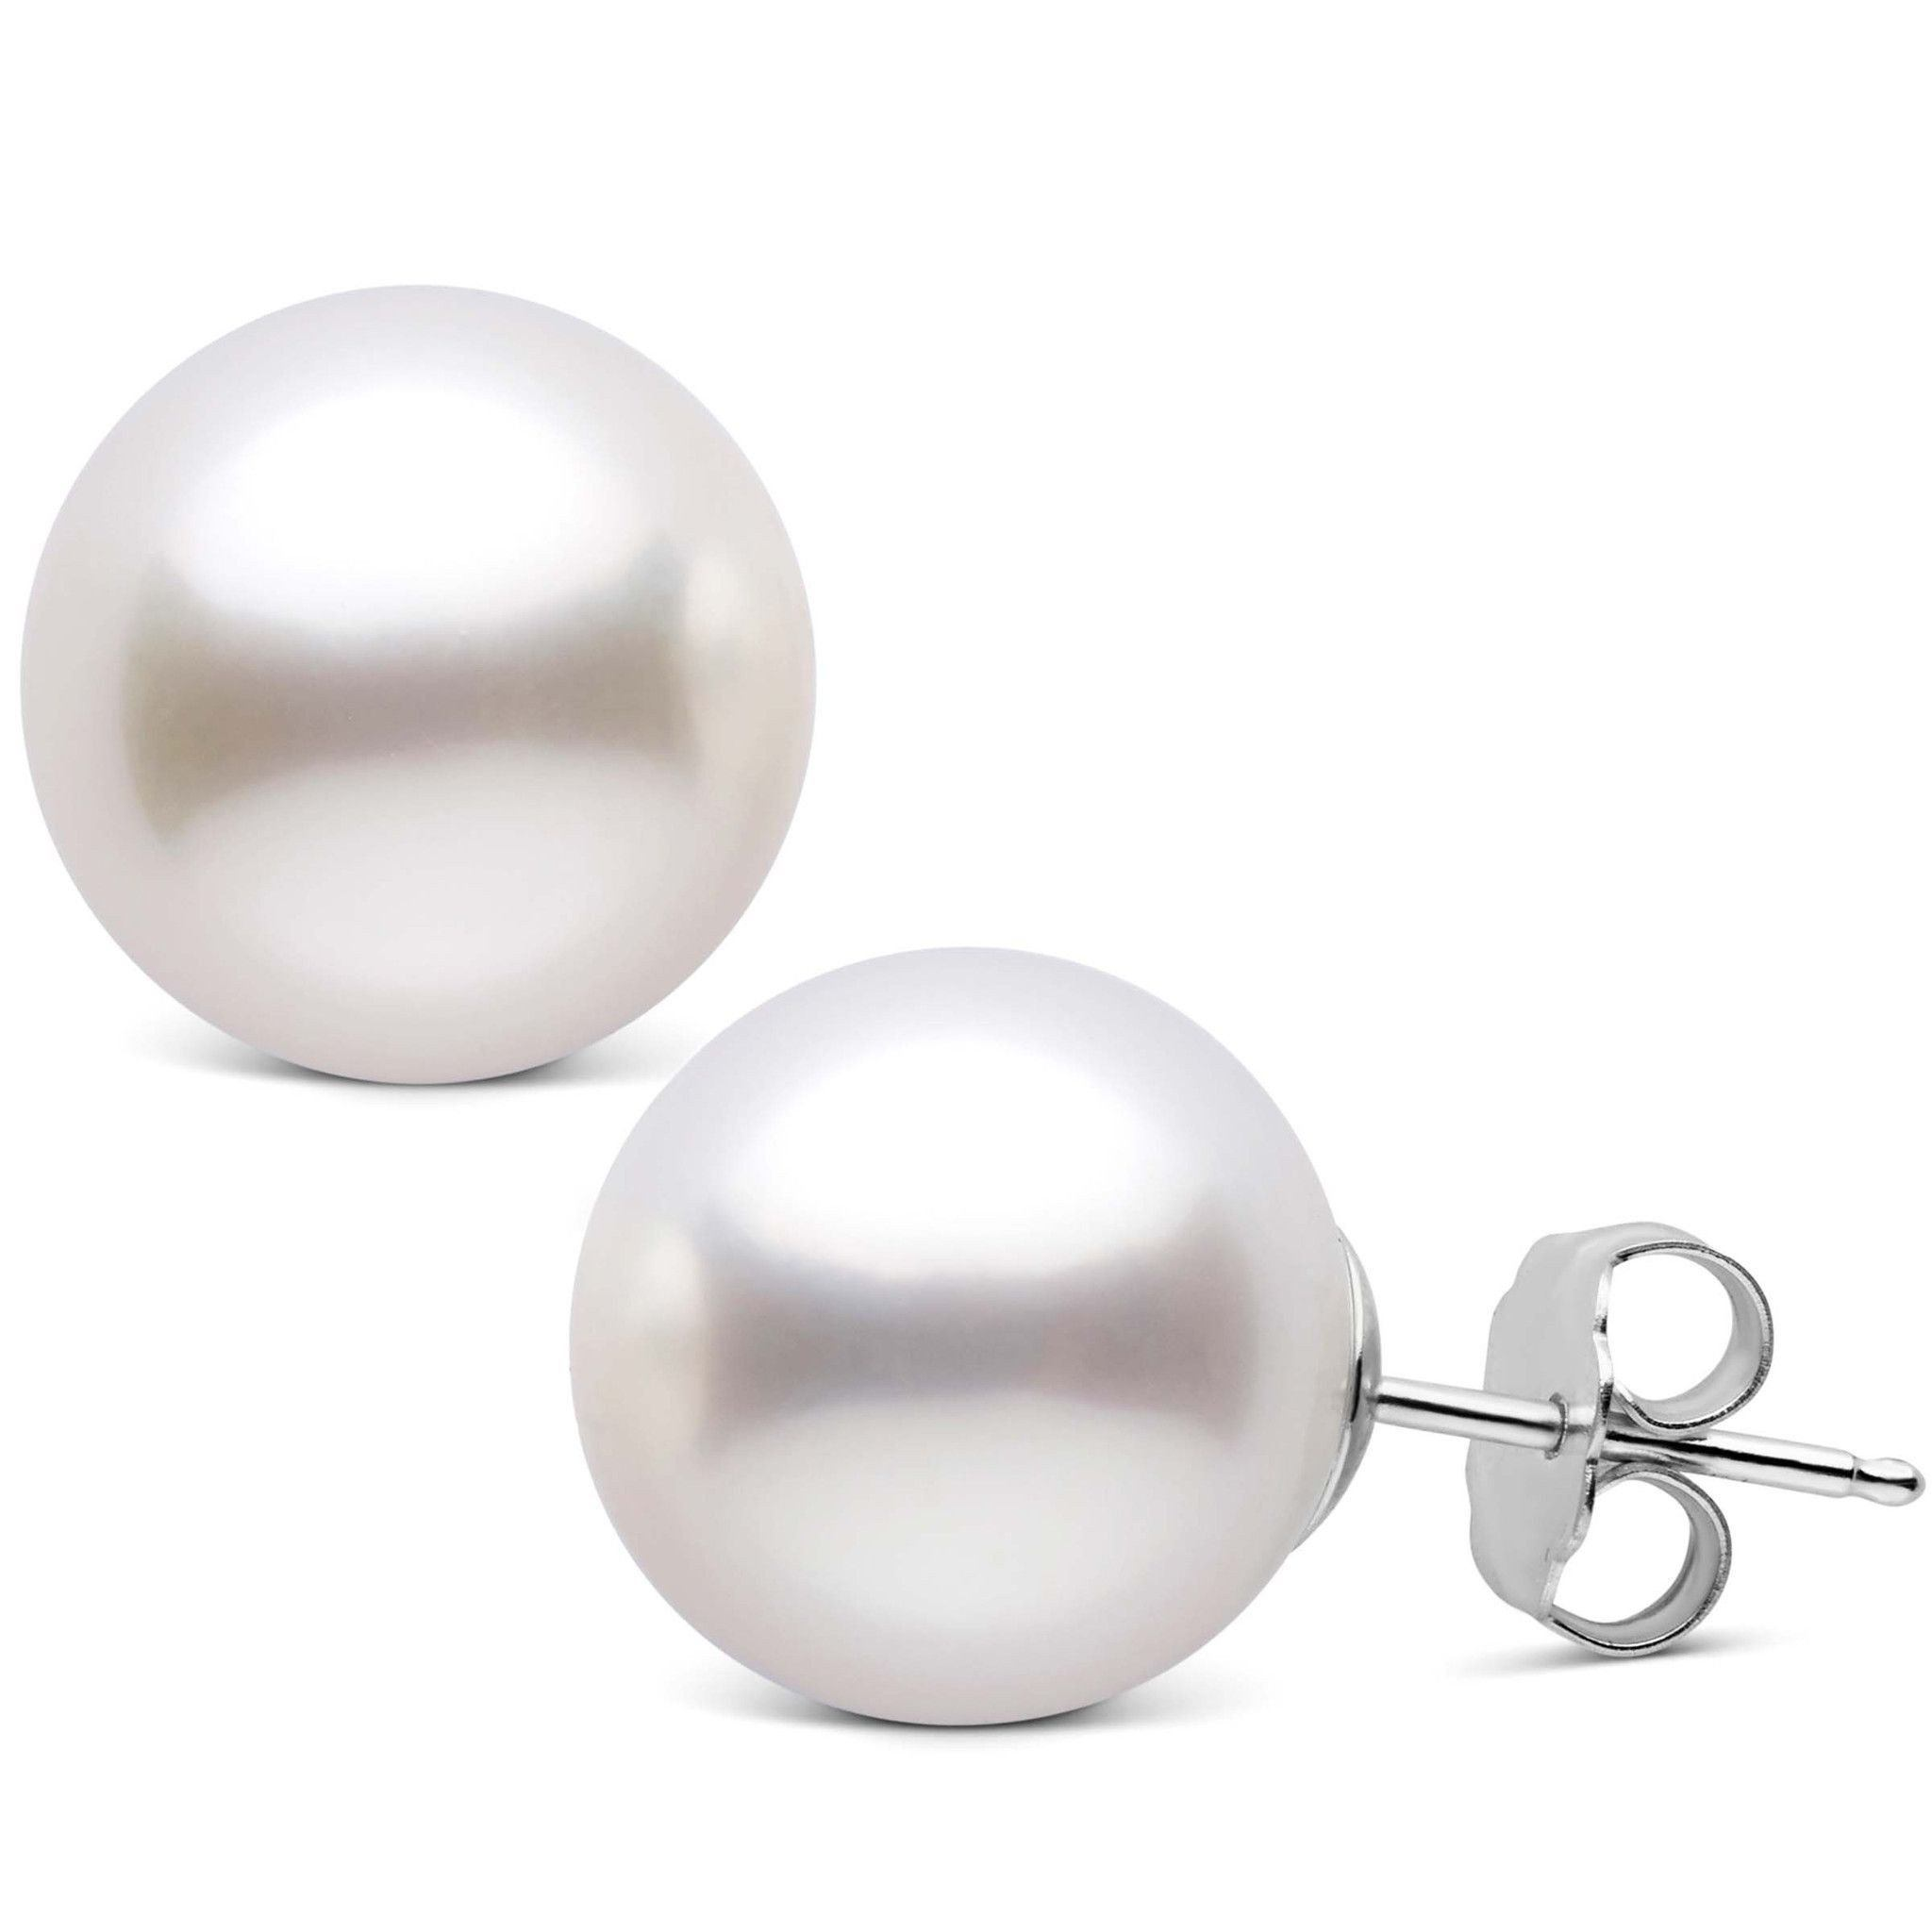 12.0-13.0 mm AAA White South Sea Pearl Stud Earrings